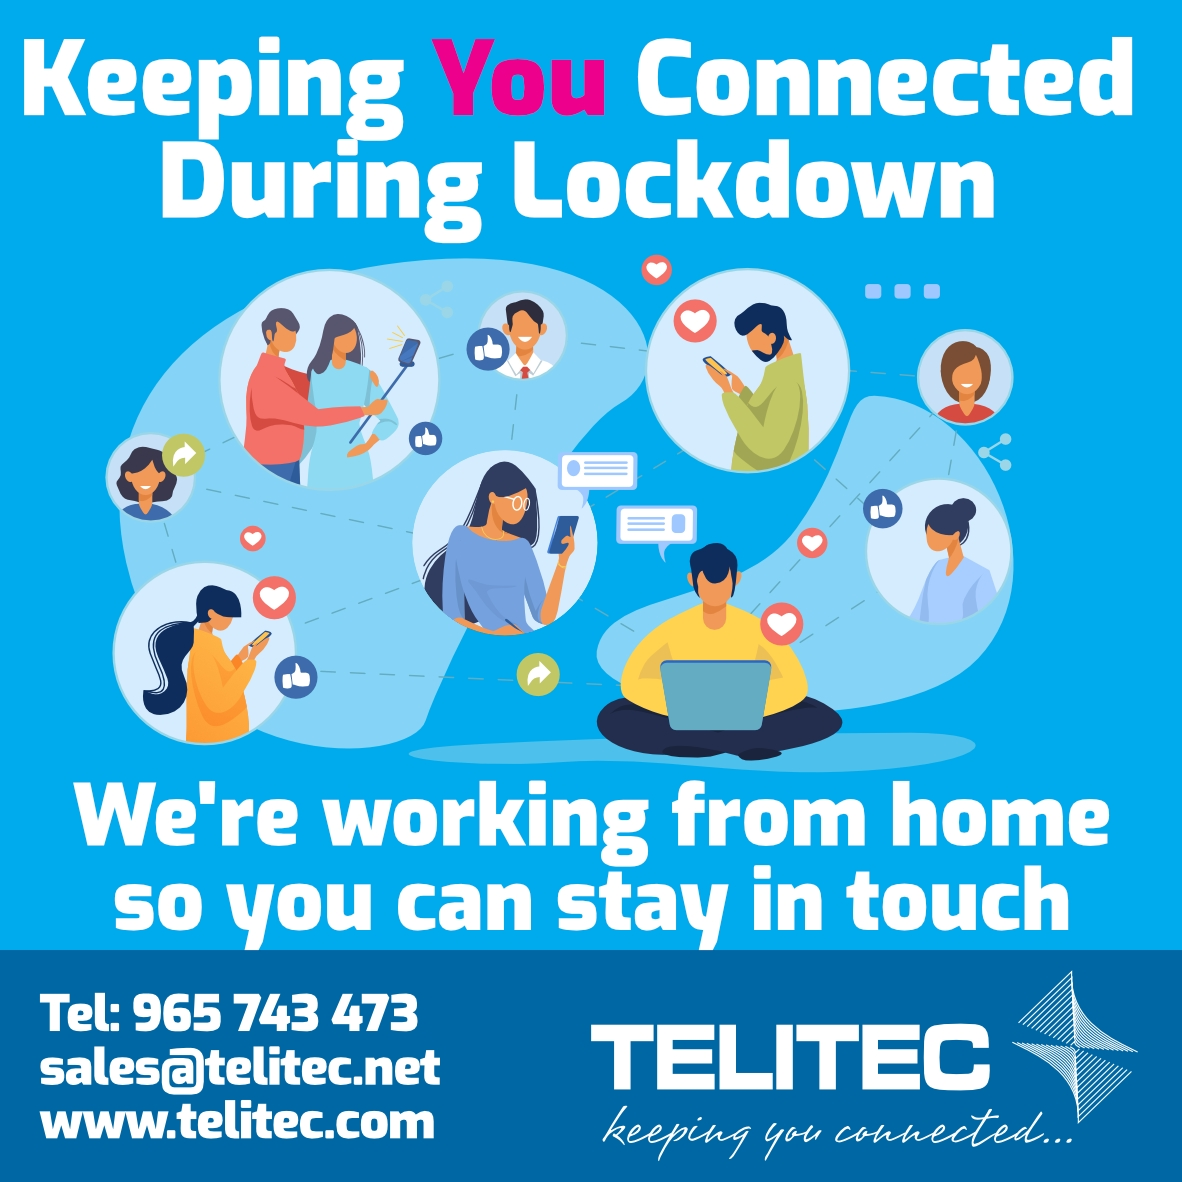 Telitec Communications: Keeping You Together While Apart